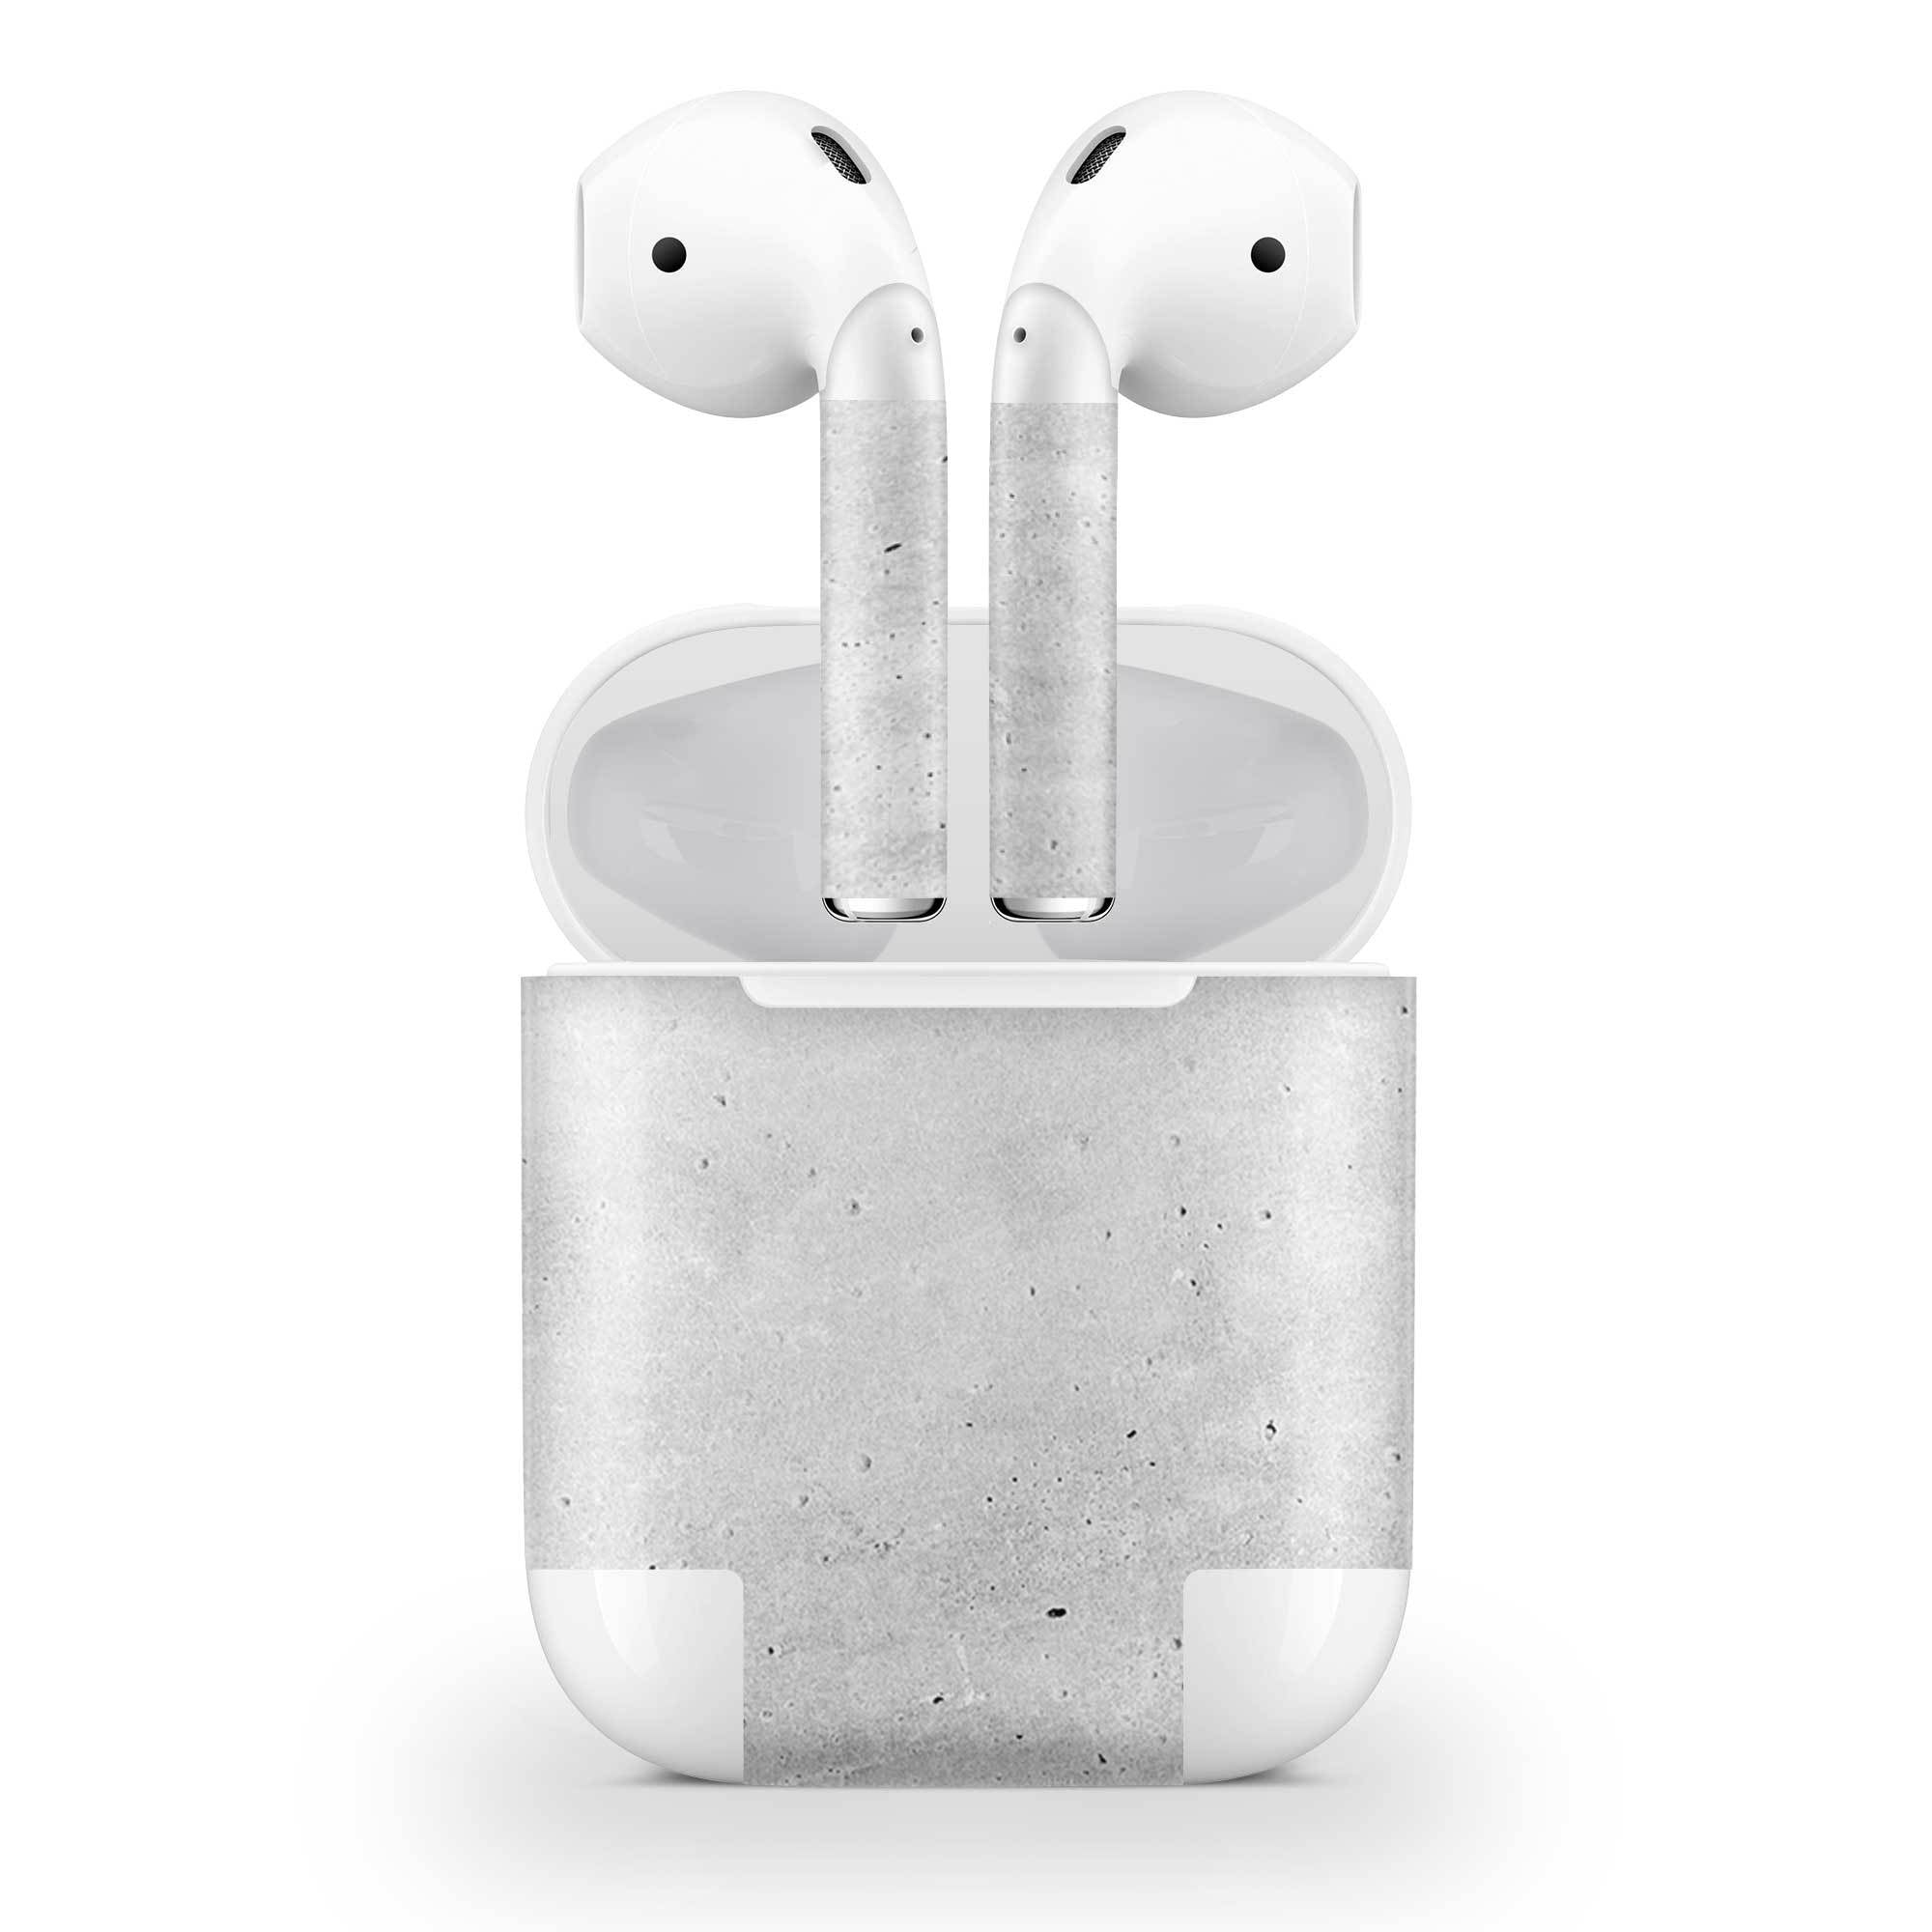 Concrete AirPods (No Wireless Charging) Skin